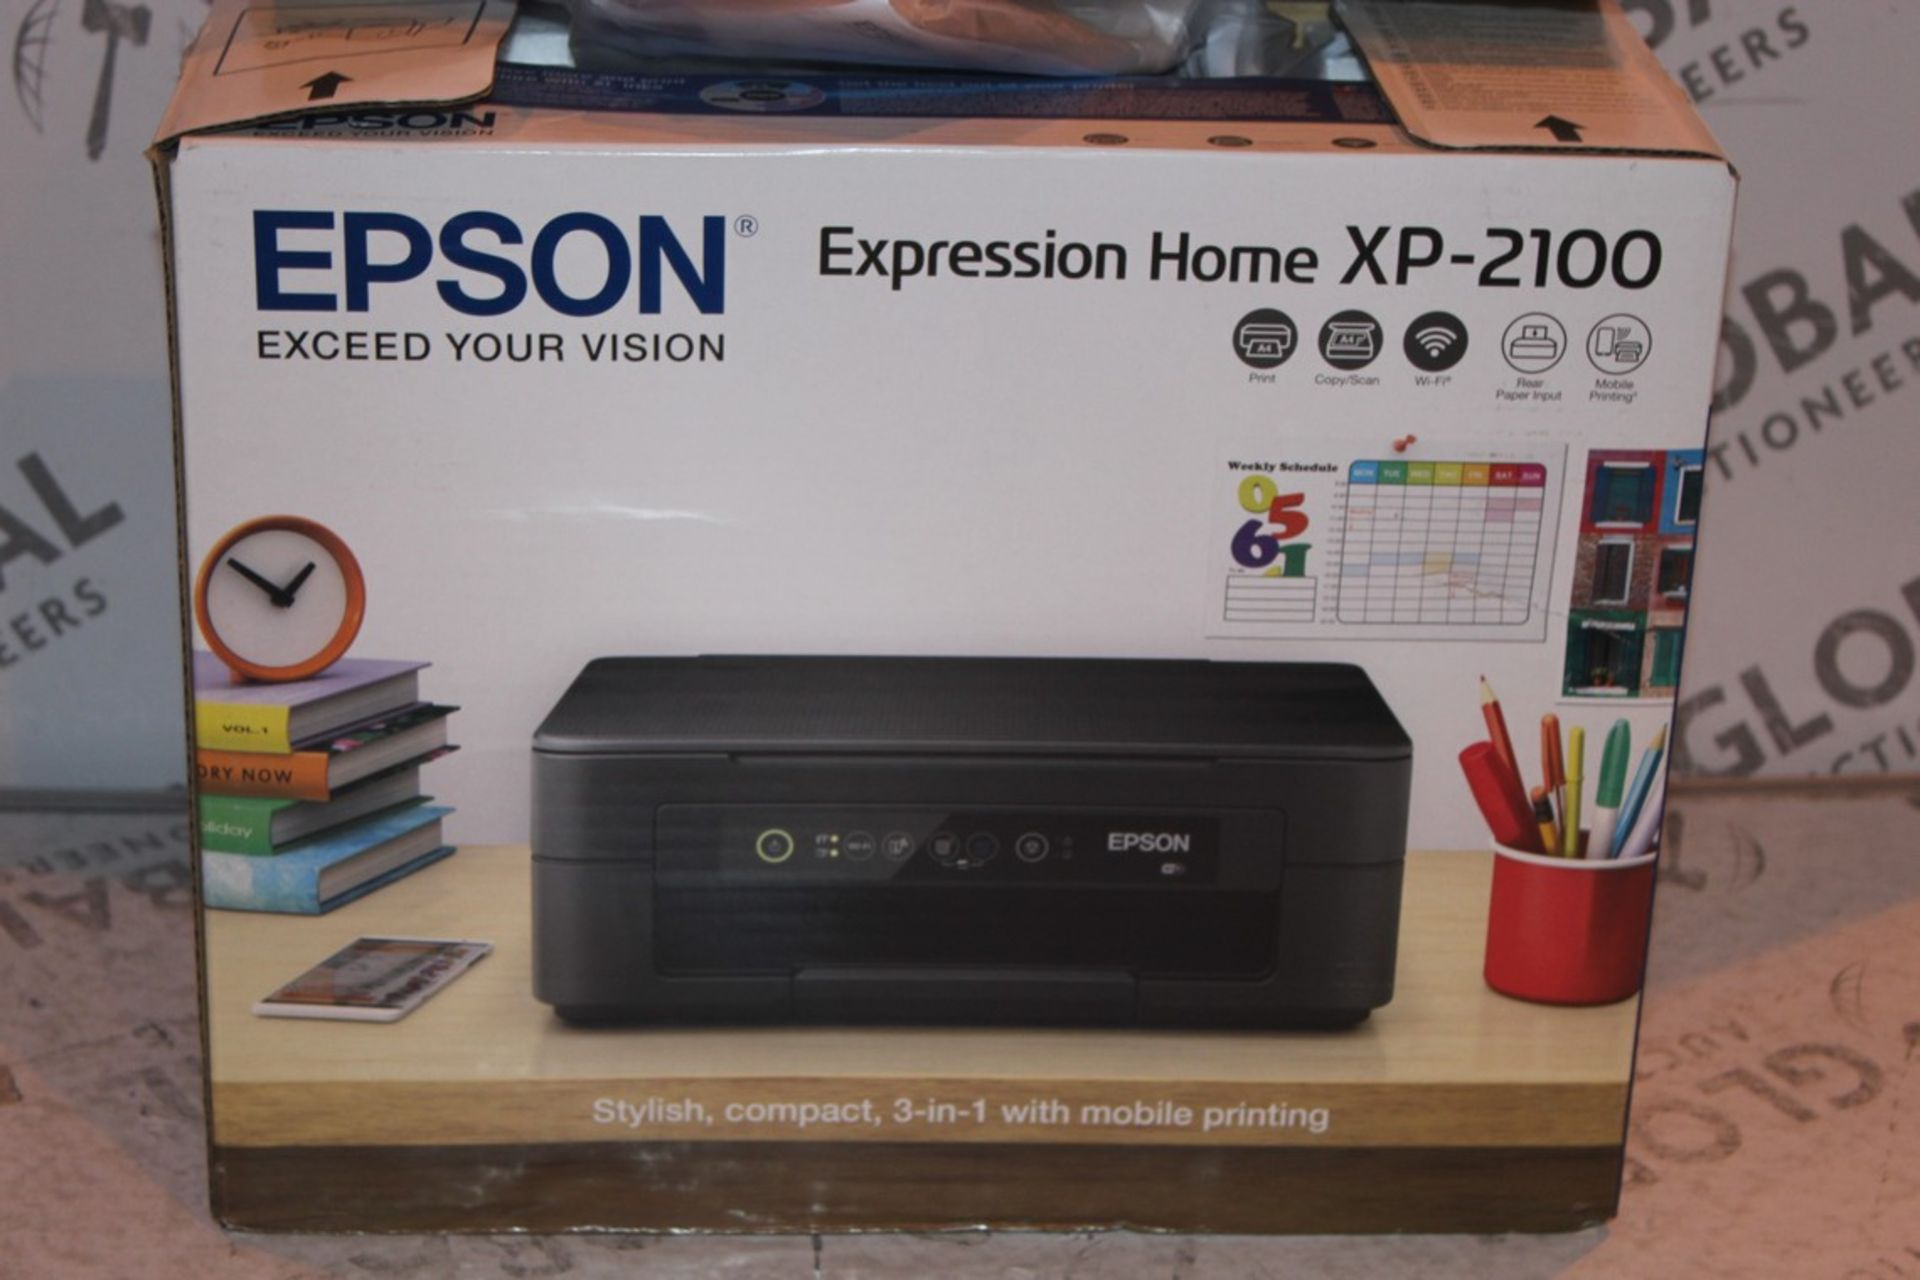 Lot 2 - Boxed Epson Expression Home XP2100 Printer RRP £55 (Public Viewing and Appraisals Available)